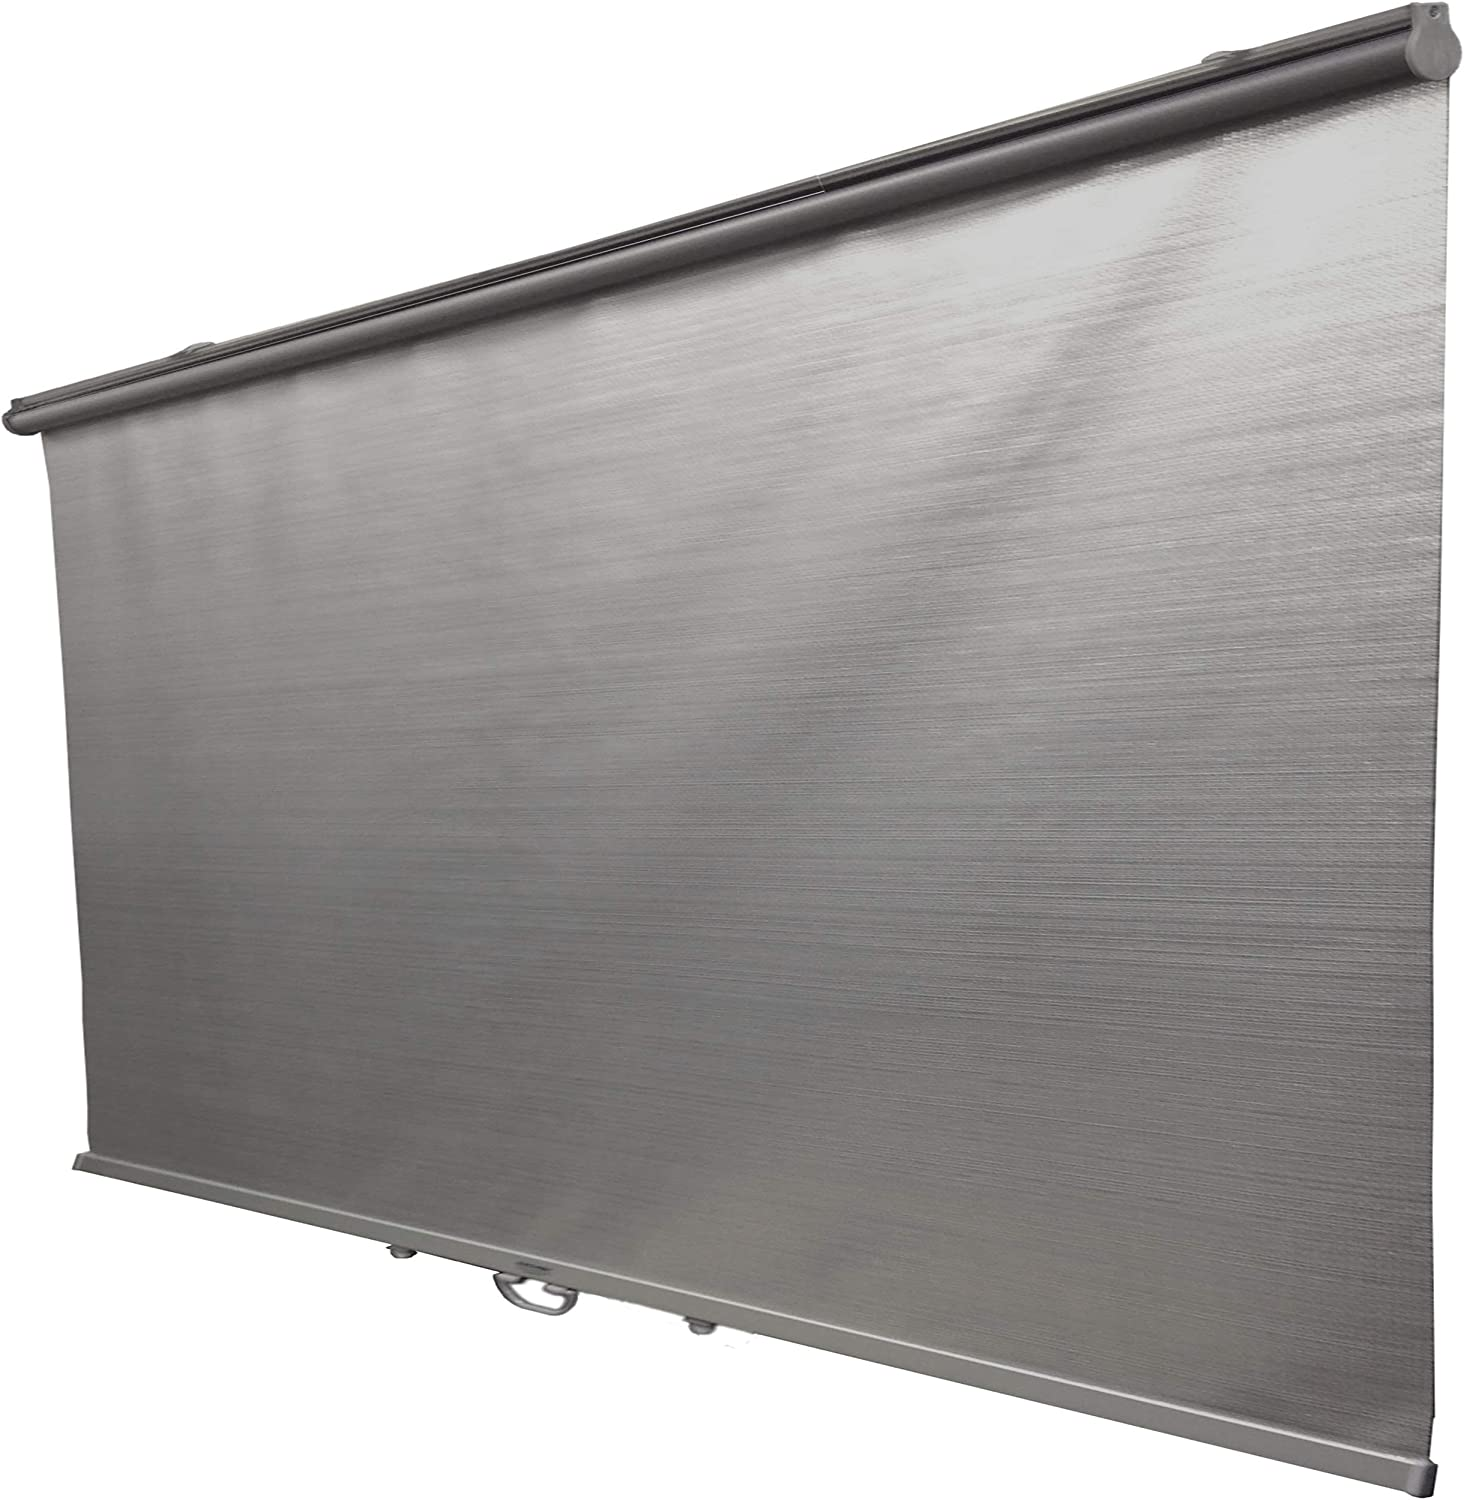 Econofrost 9600 Series OEM/Non- Cassette • 8 Foot • Attaches Inside Canopy of Upright Multi-Deck Refrigerated Display Cases • Ideal to Specify in New Equipment Purchases